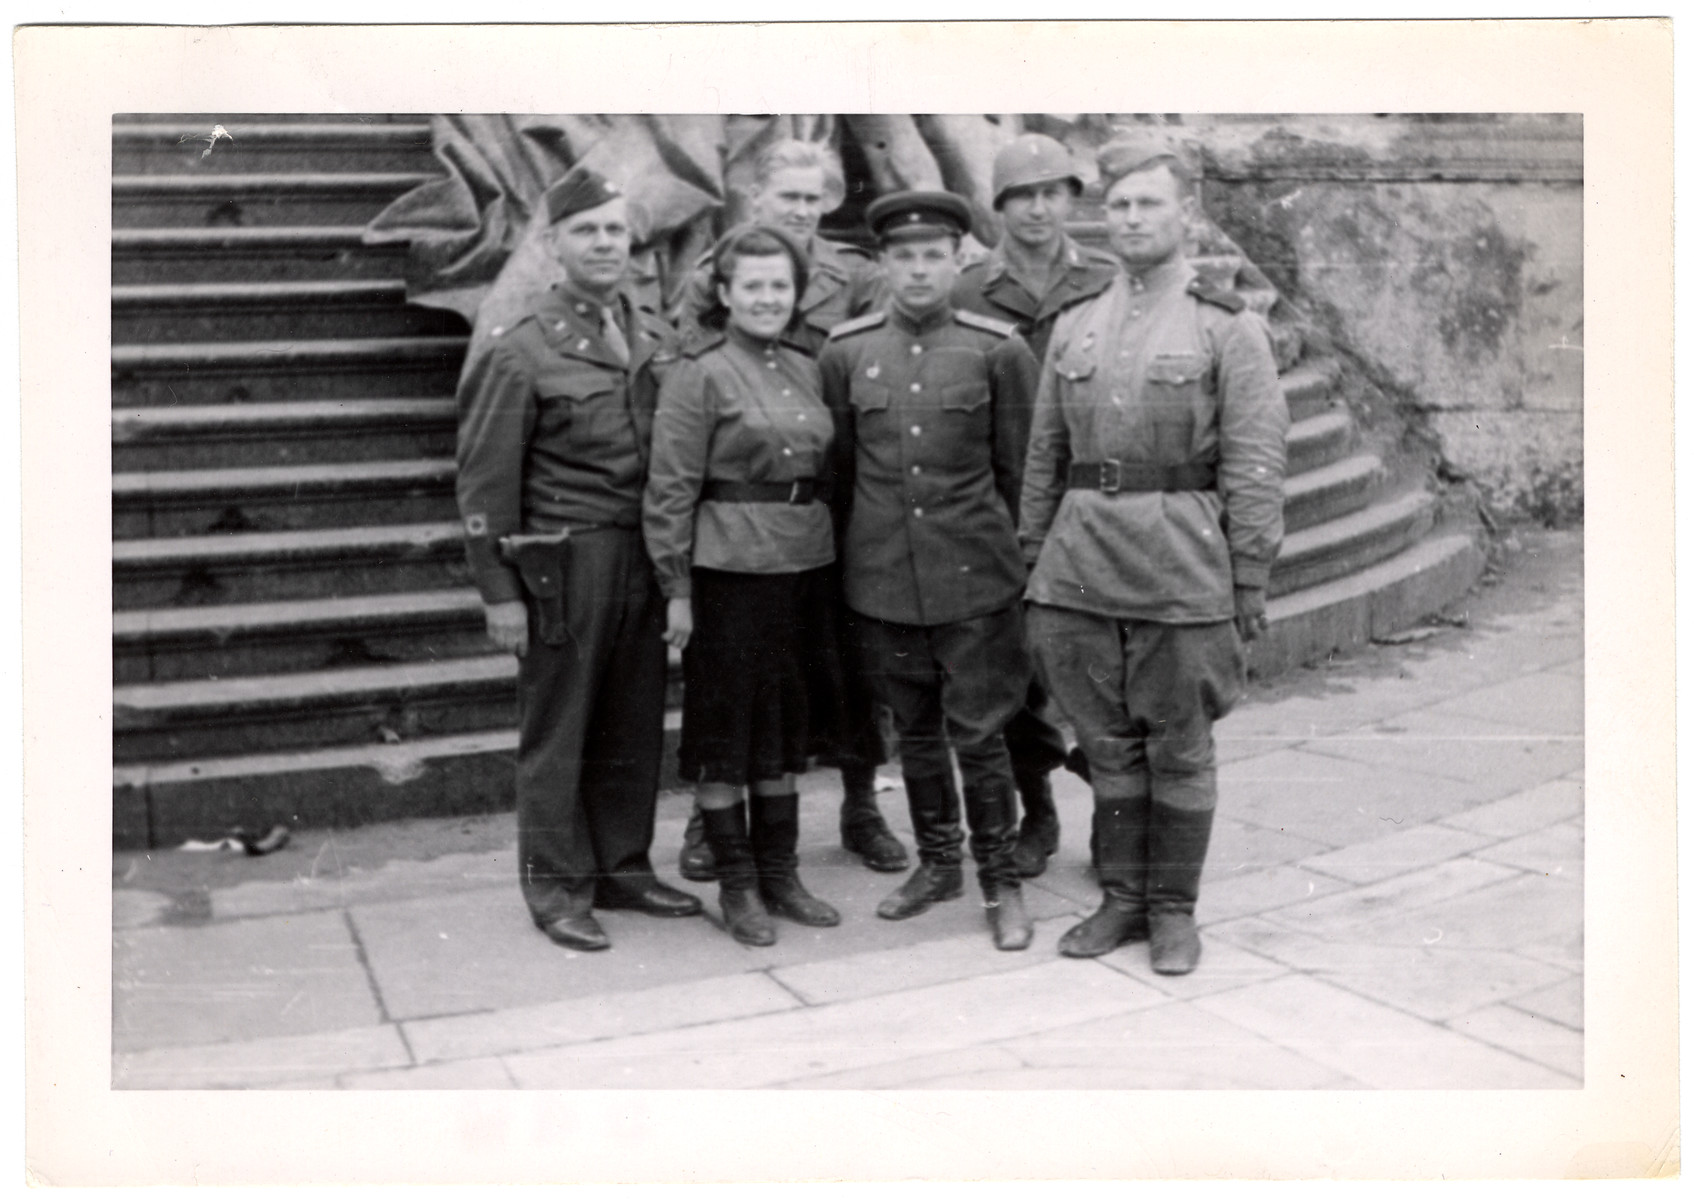 Lt. Col. Ralph E. Willey and Lt. Plevinsky pose with Russian soldiers on the steps of the Russian headquarters in Berlin.